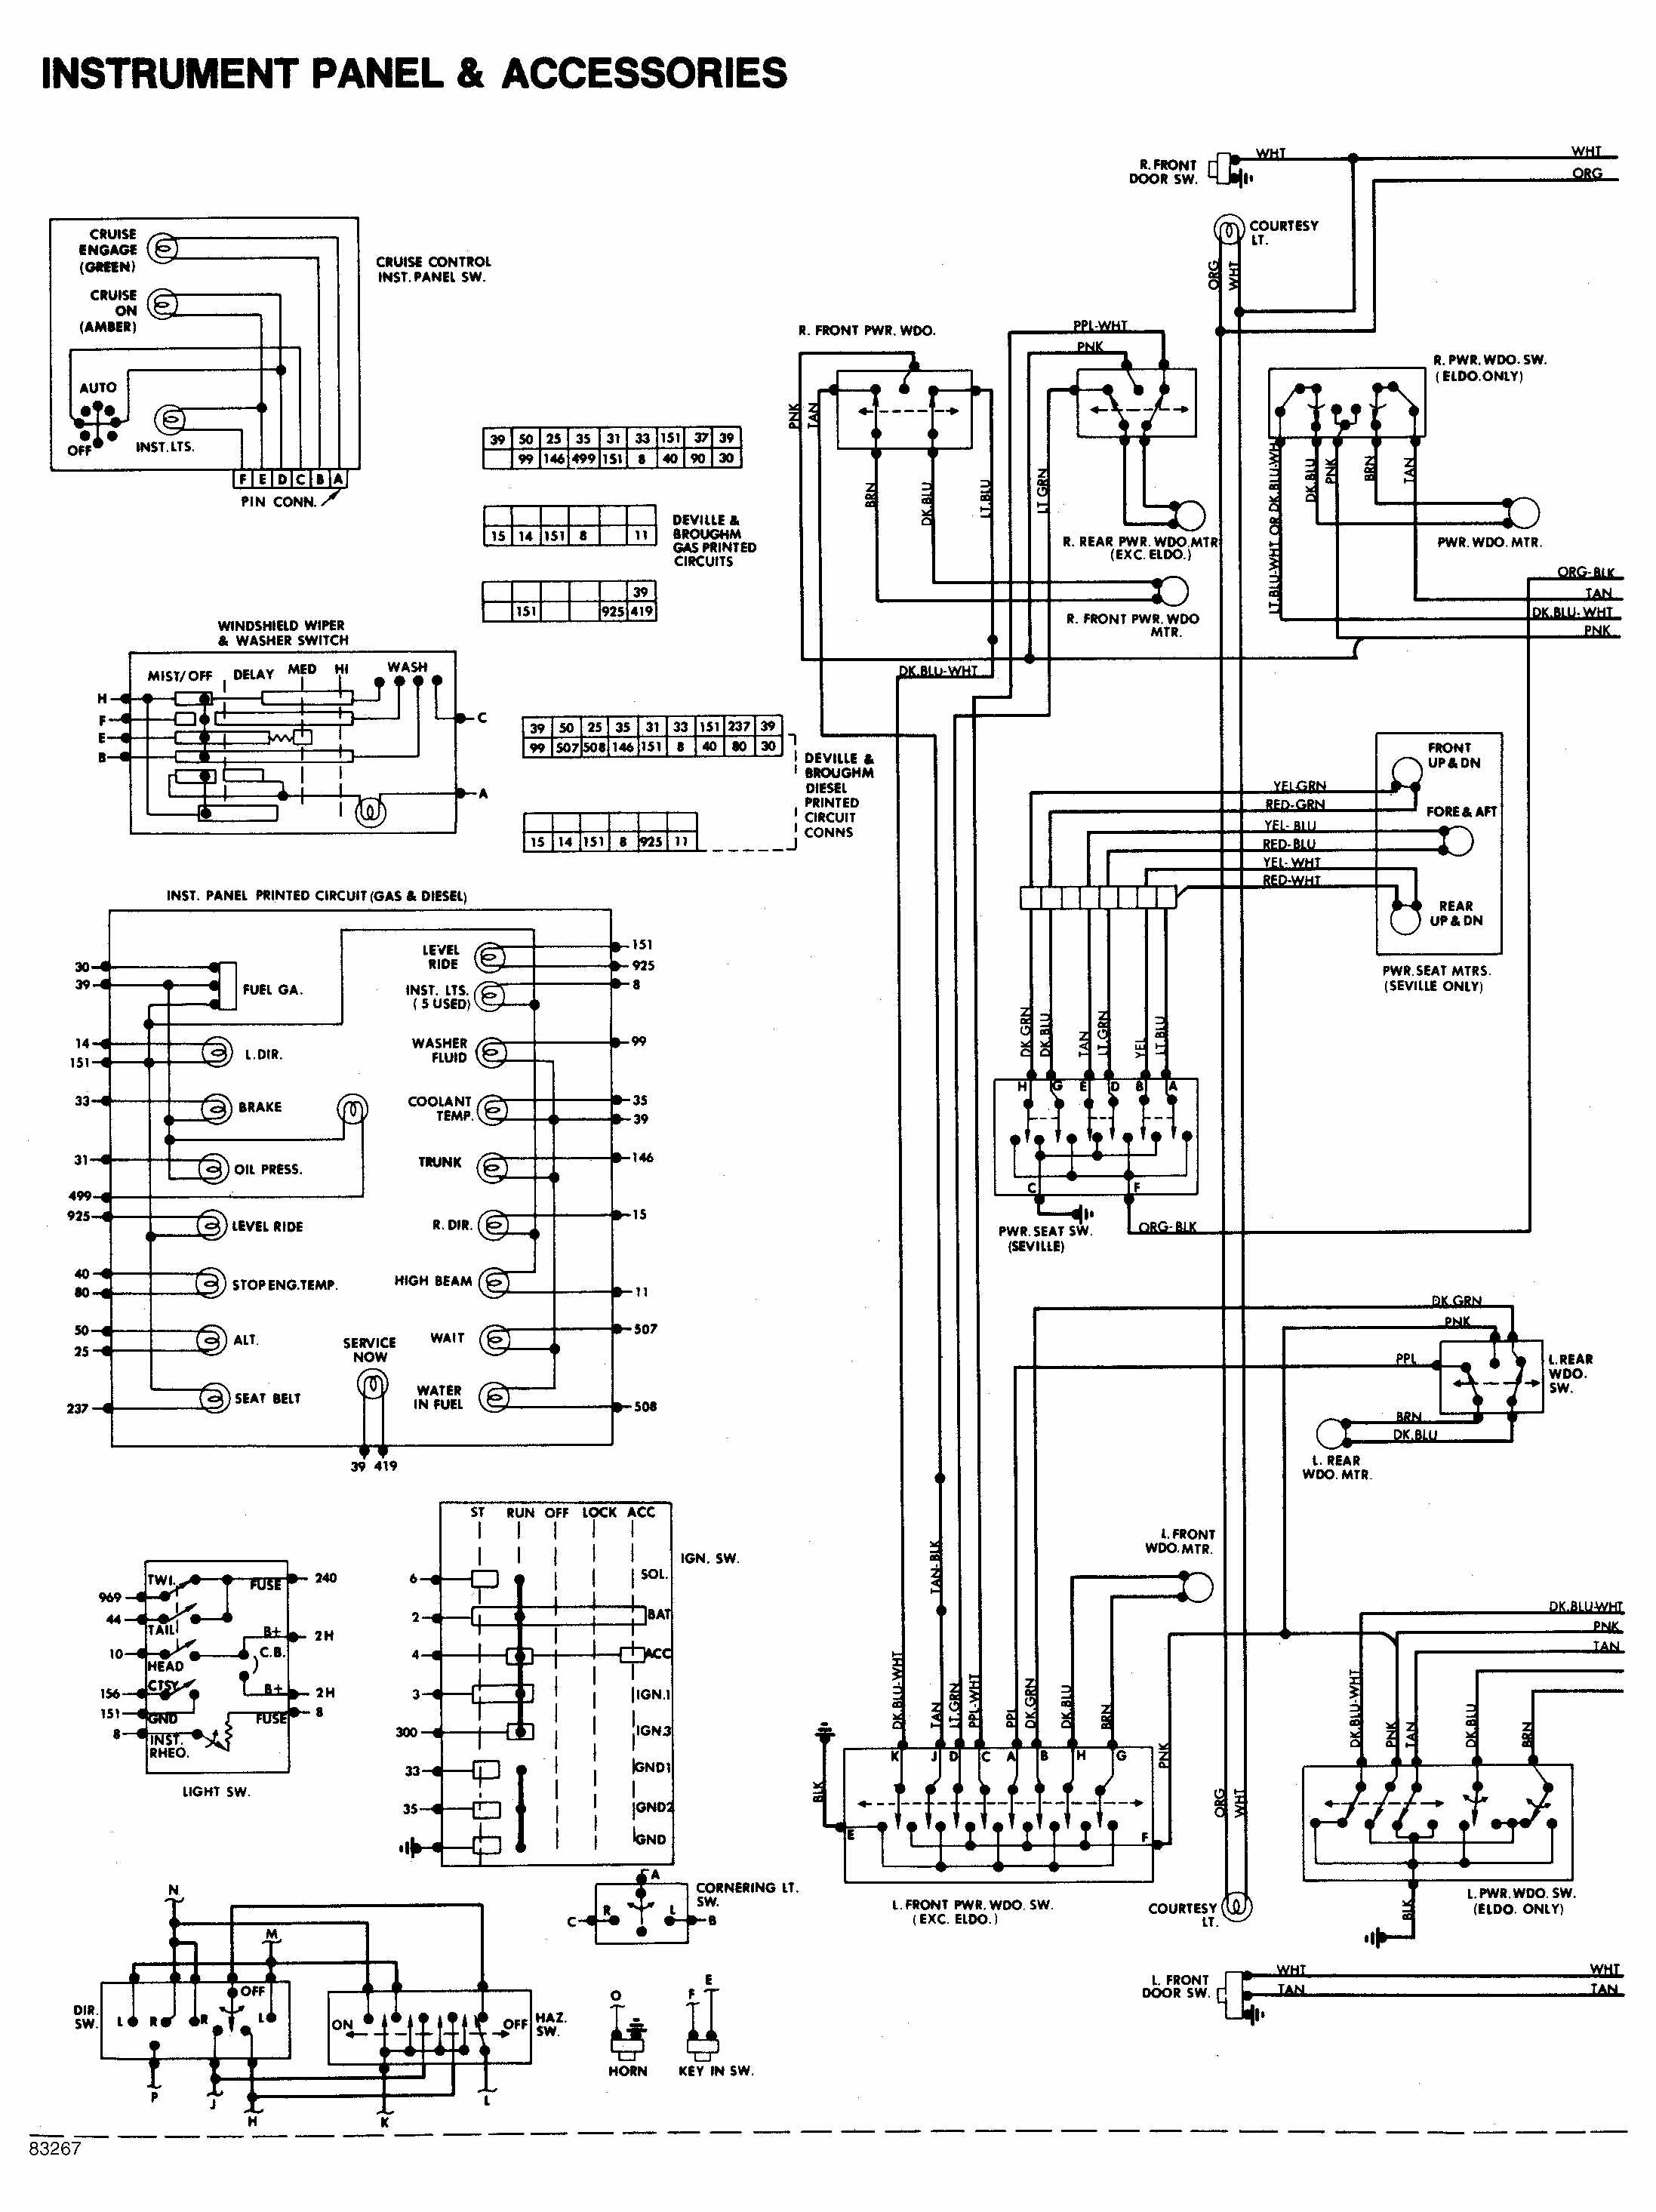 instrument panel and accessories wiring diagram of 1984 cadillac deville gm wiring diagrams gm wiring diagrams online \u2022 wiring diagrams j 1985 Buick Regal at bakdesigns.co